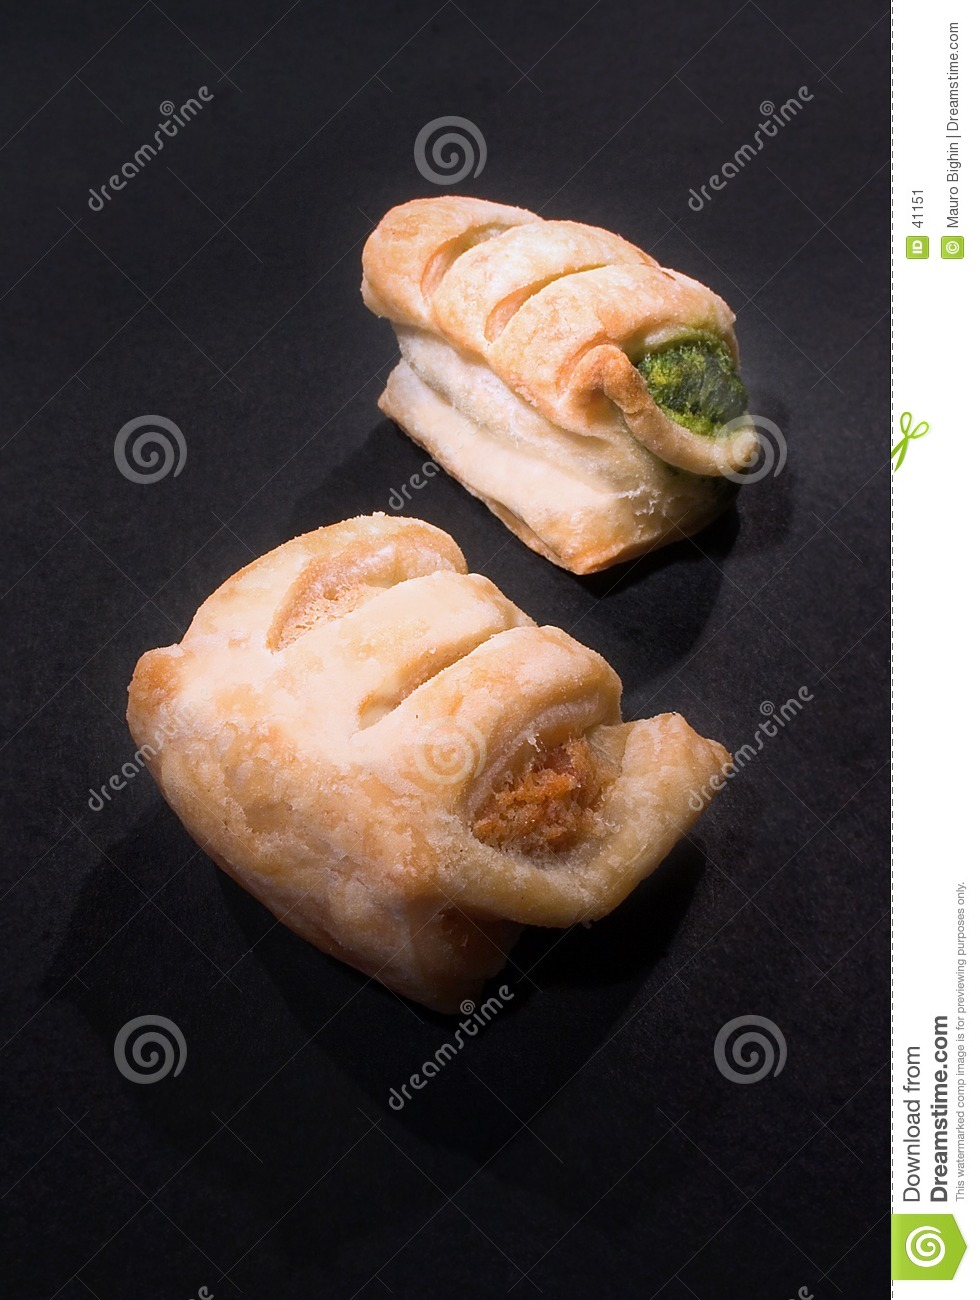 Small pastry